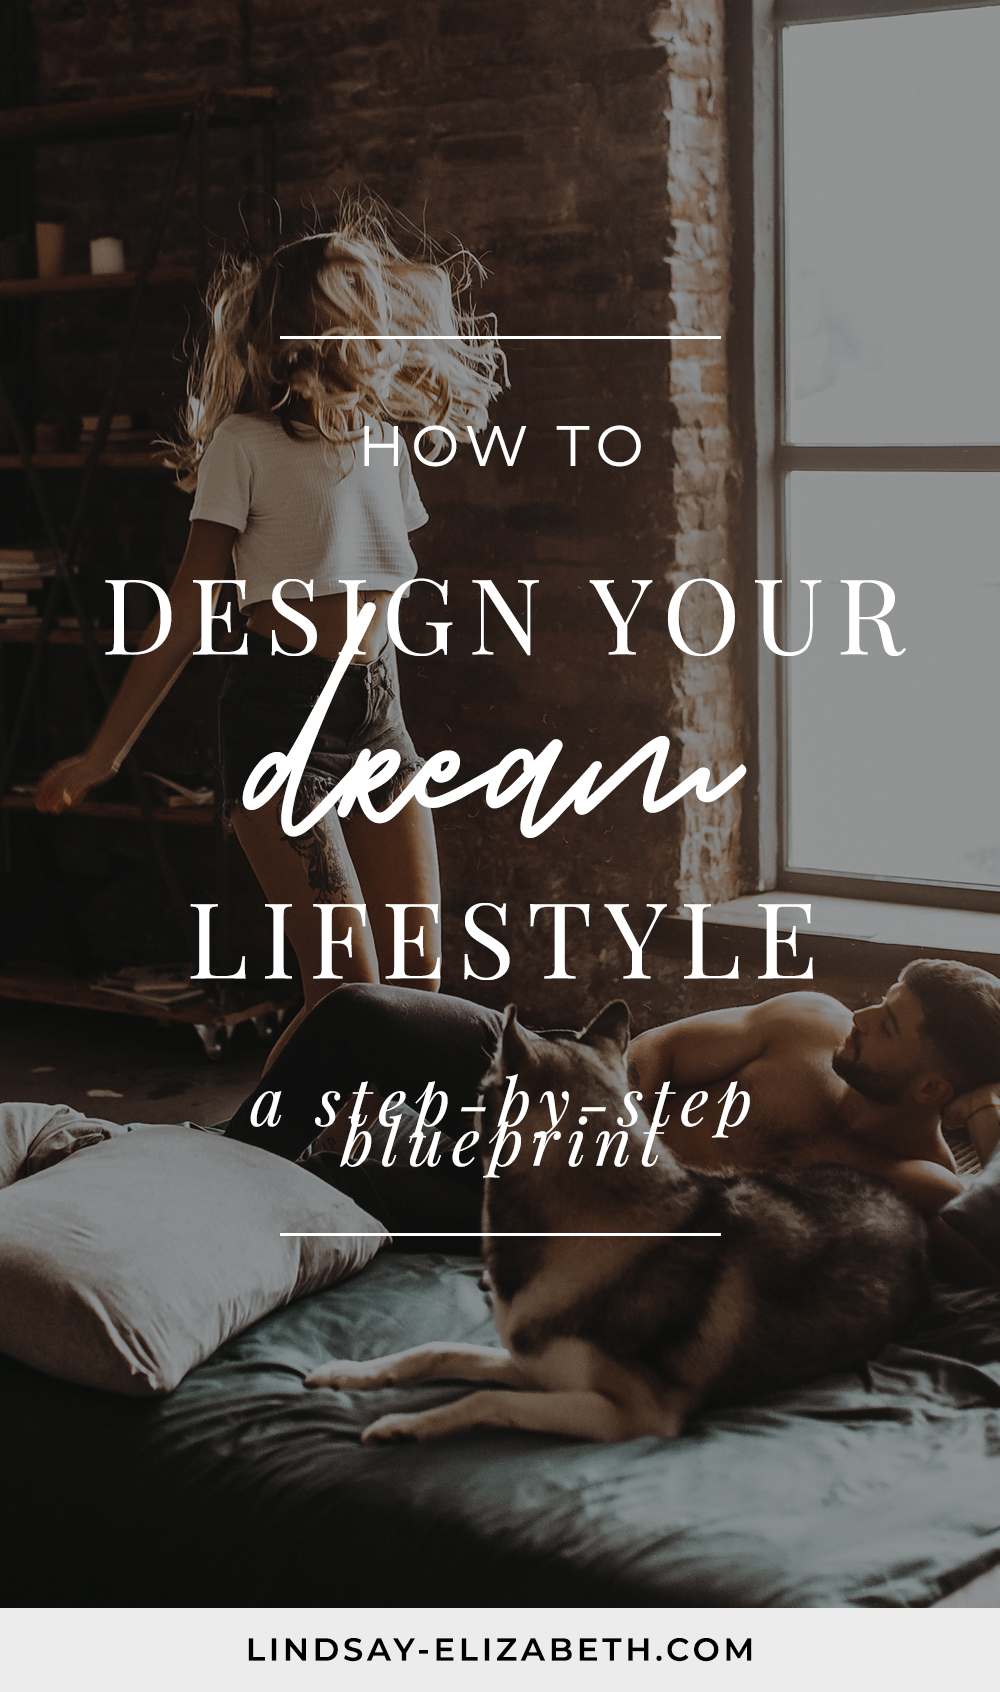 Struggling to know exactly what to do next to bring your dream life into reality? This free personal development masterclass will show you the trick to always knowing how to stay aligned with what truly fulfills you so you can set achievable goals and design a life you love. #goalsetting #selfgrowth #personaldevelopment